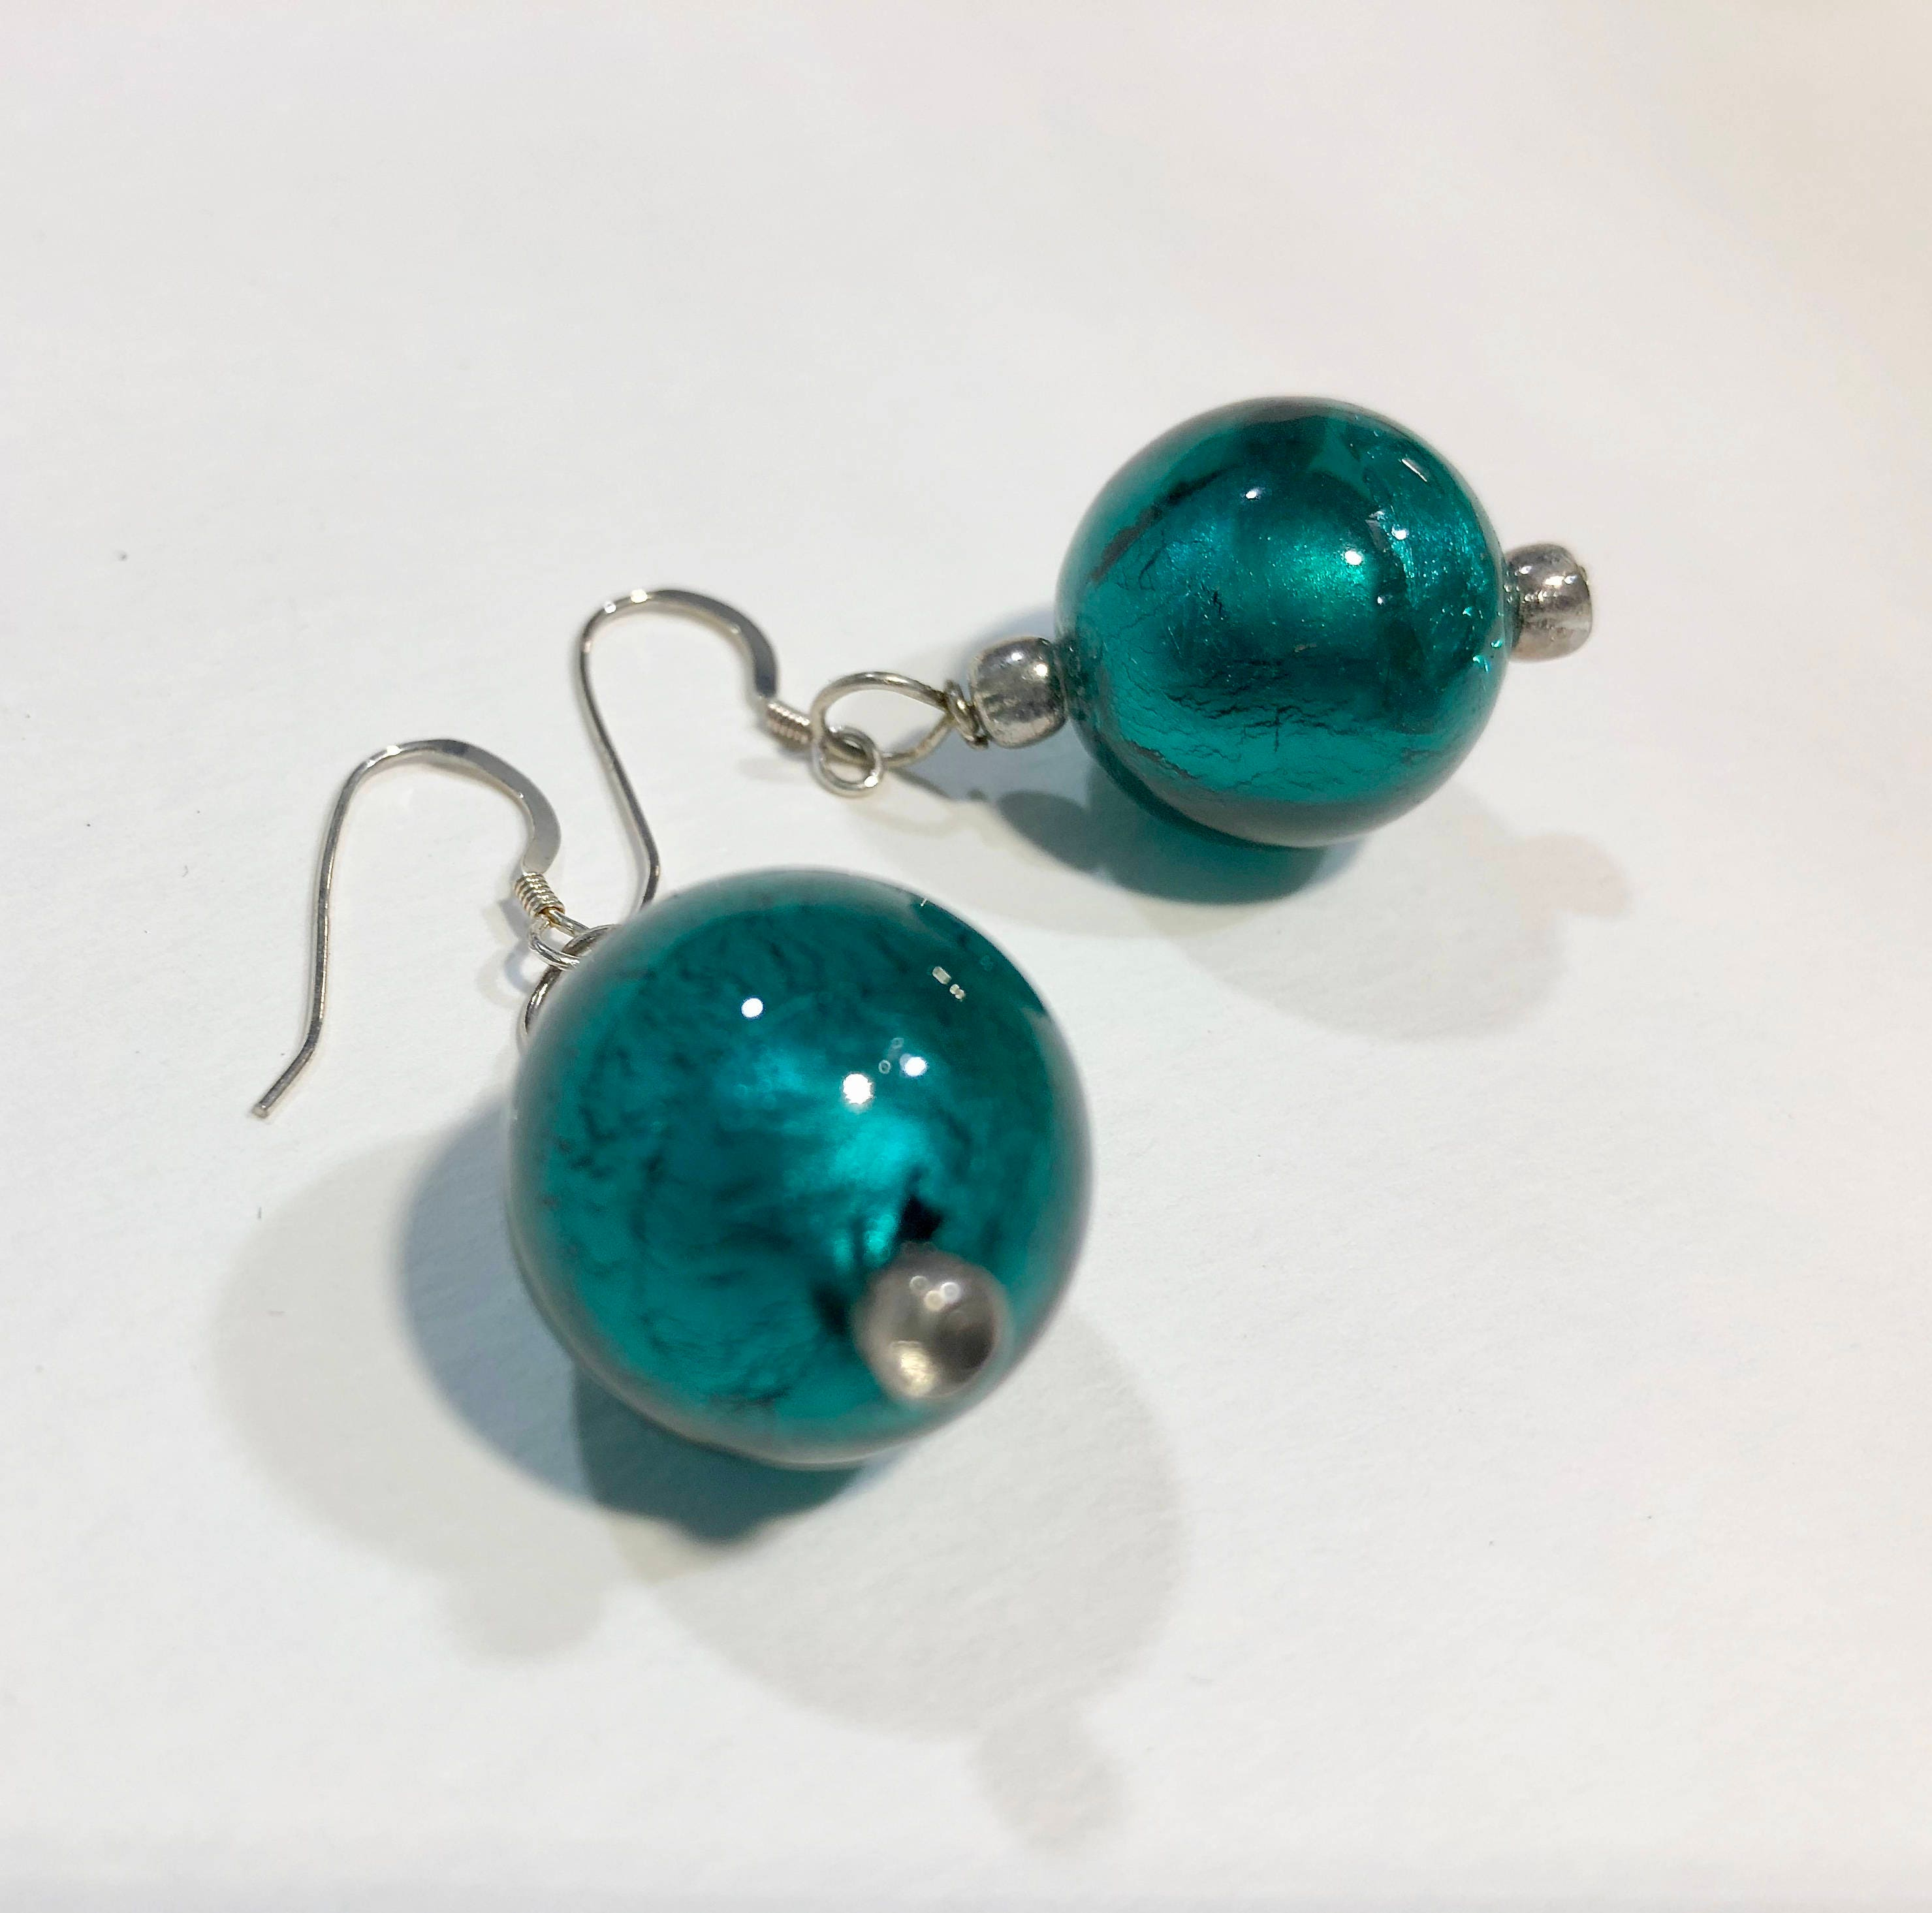 SJC10122 - Handmade blue round shimmering bead earrings with silver ...